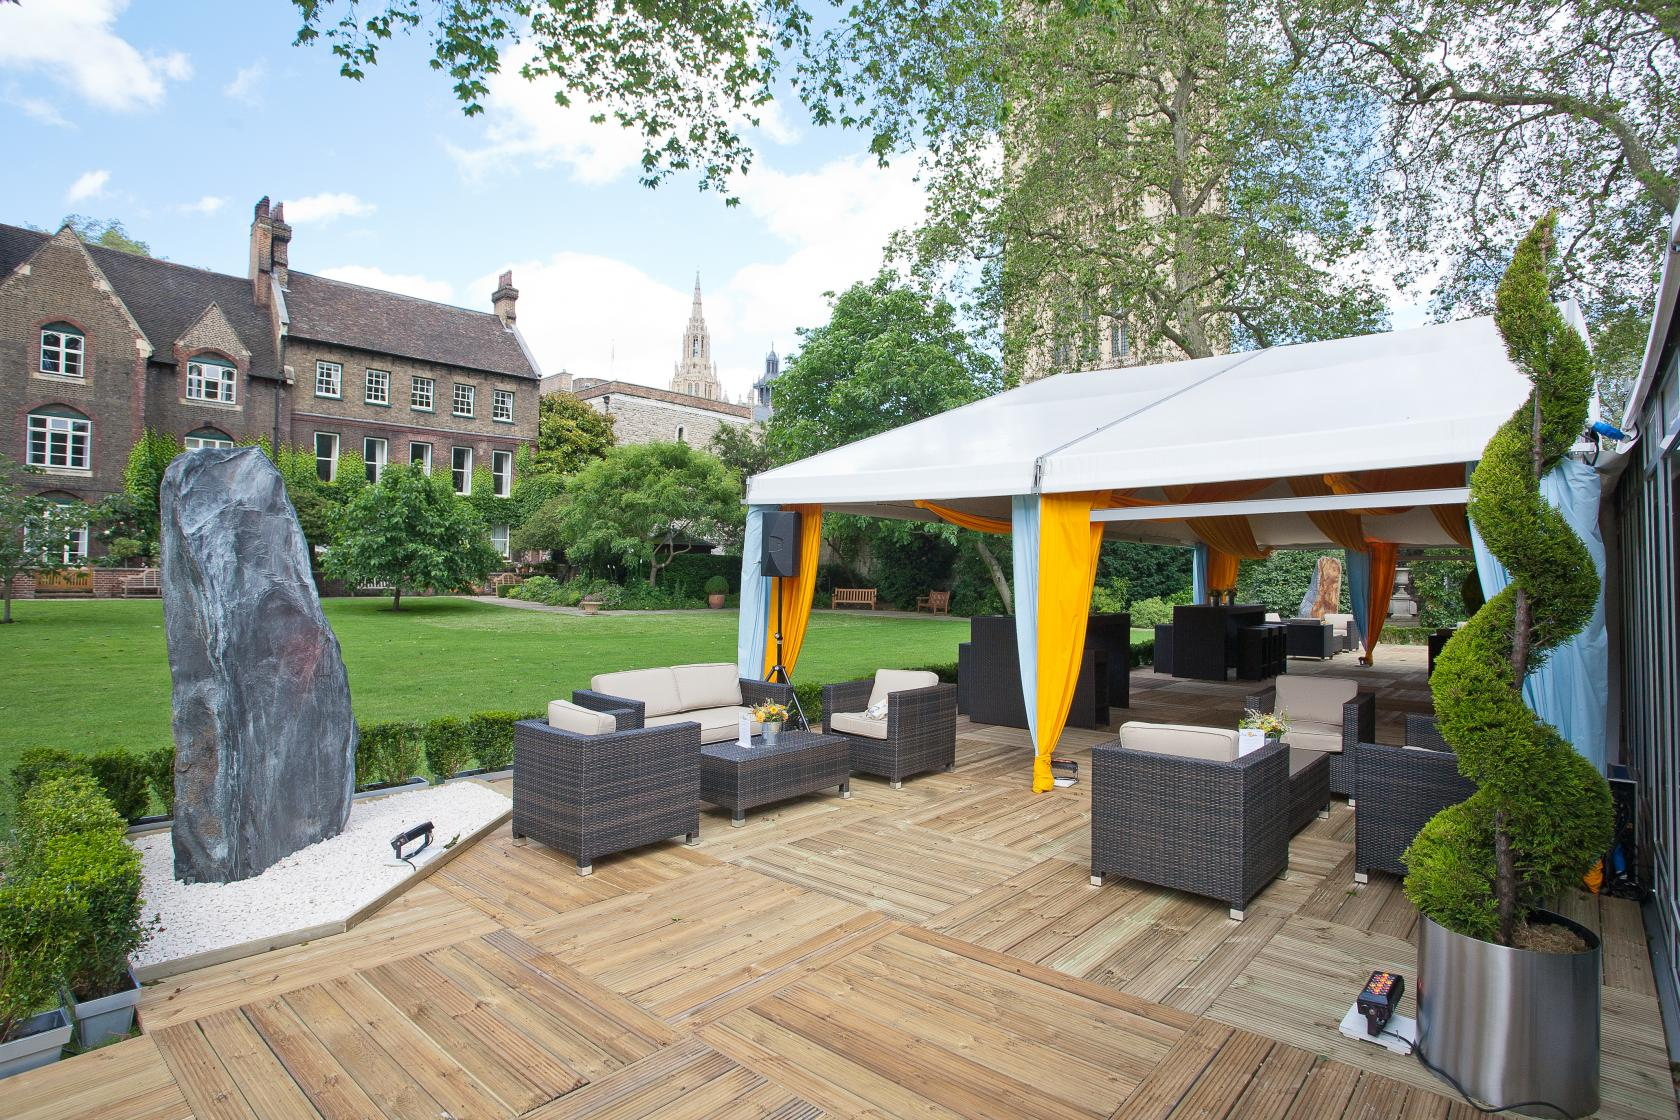 Magnificent views of Westminster Abbey and the Victoria Tower make this large venue one of London's most idyllic spaces for big outdoor events.